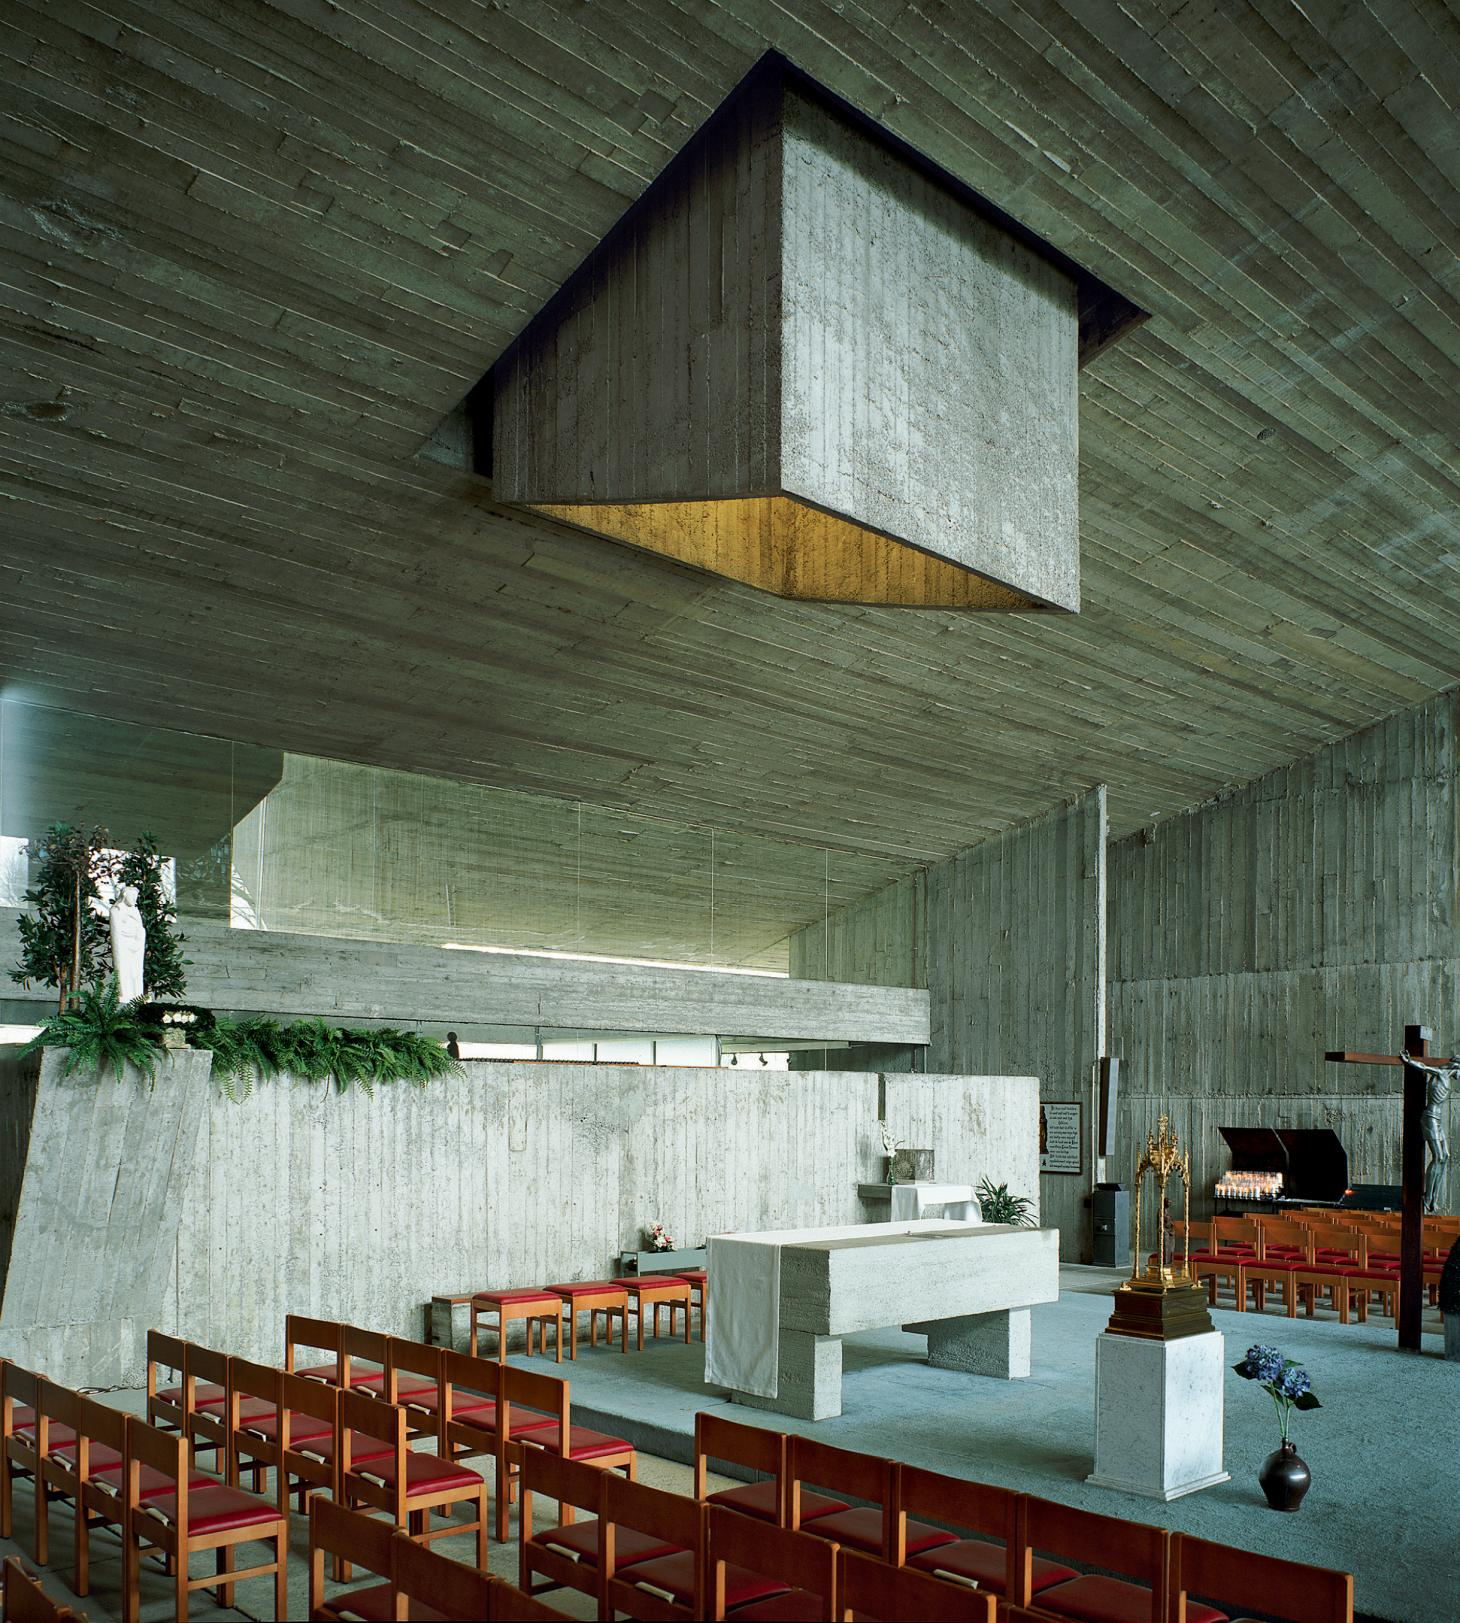 Juliaan Lampens church design